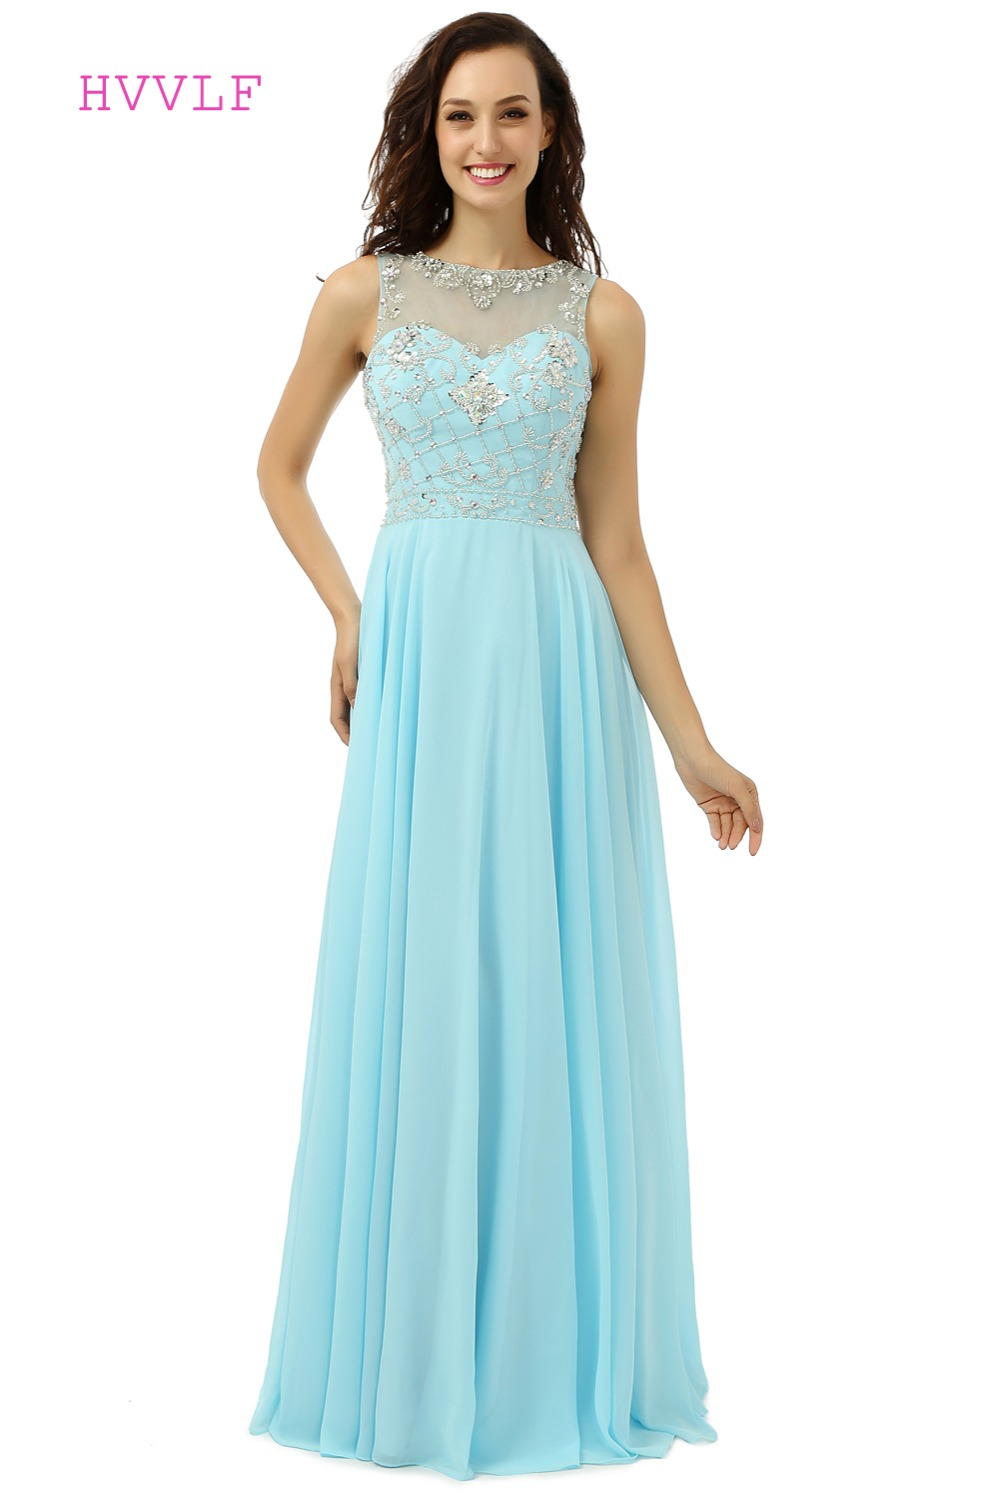 Turquoise Robe De Soiree 2019 A-line See Through Chiffon Beaded Crystals Formal Long   Prom     Dresses     Prom   Gown Evening   Dresses